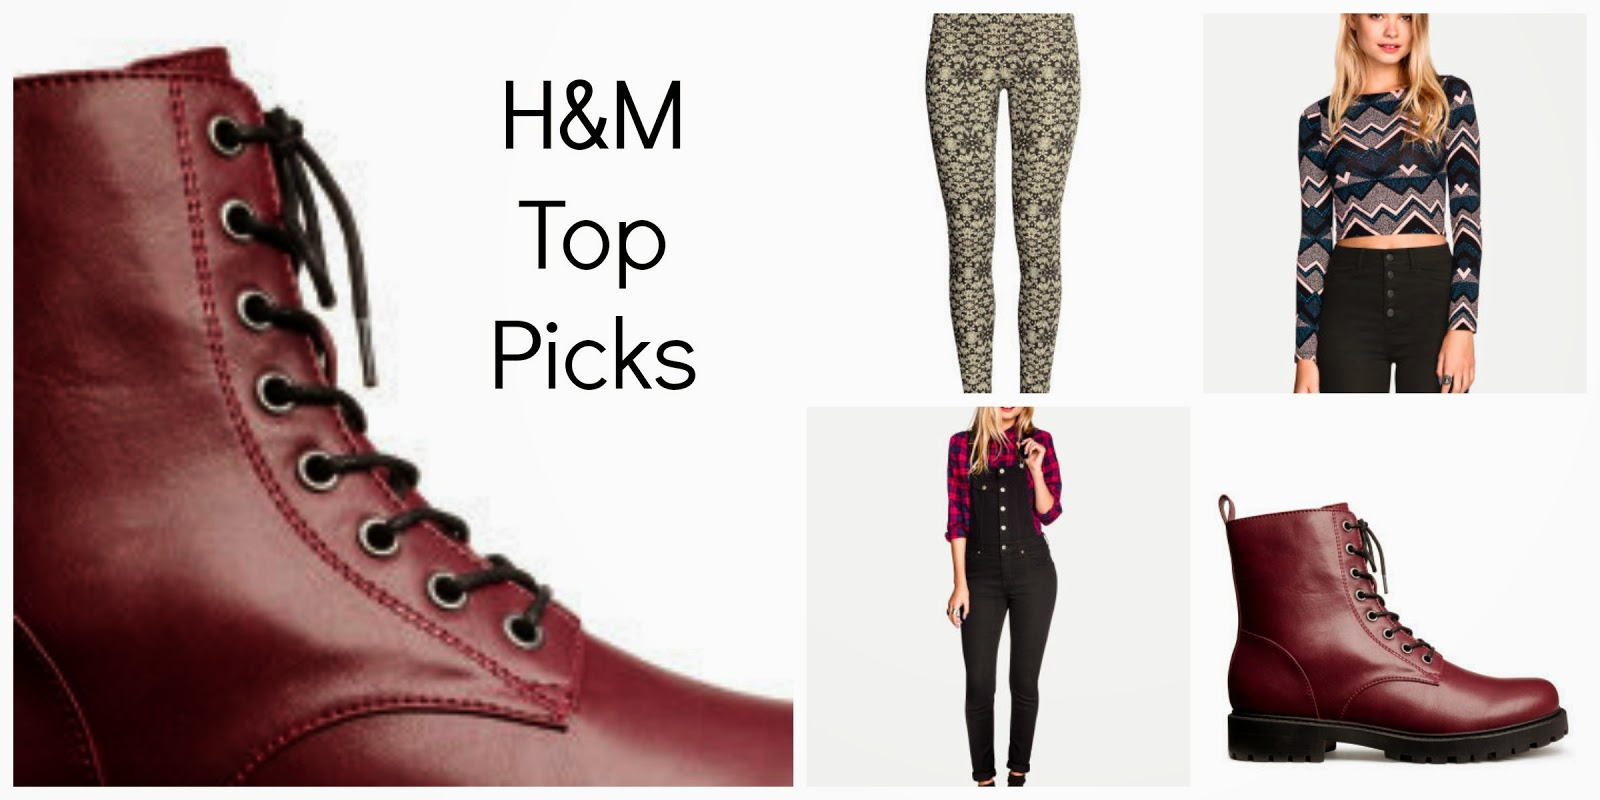 top picks h&m winter